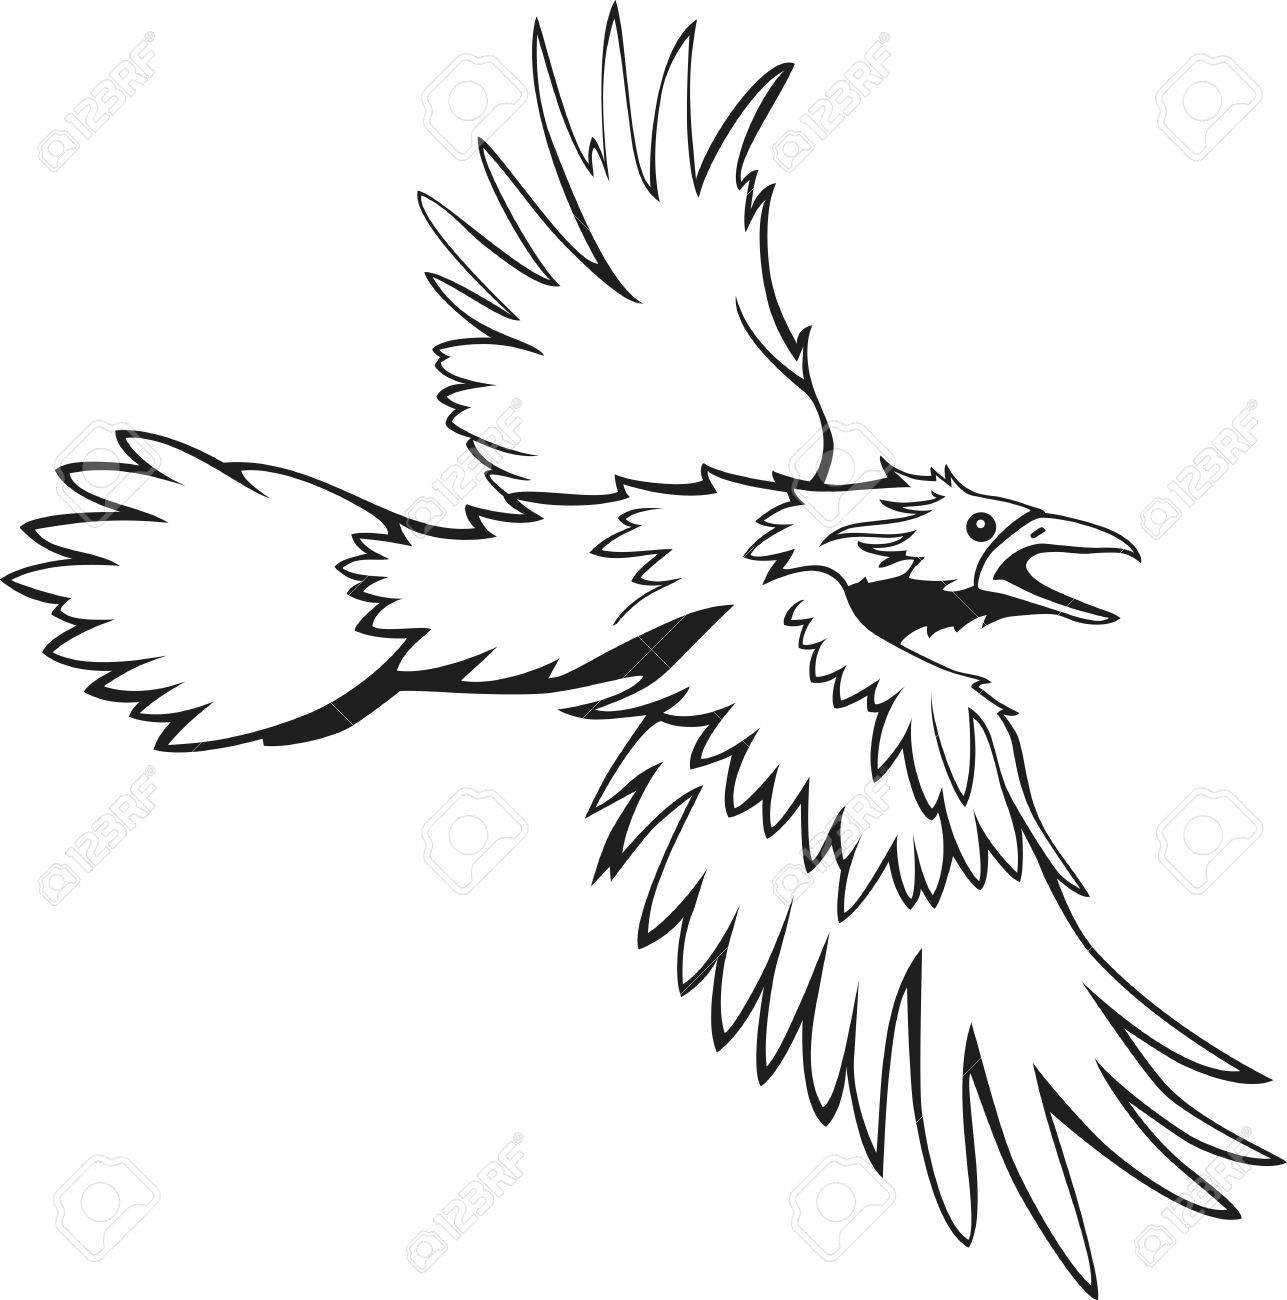 1287x1300 Sketch Of Flying Raven, Black And White, Outline Royalty Free